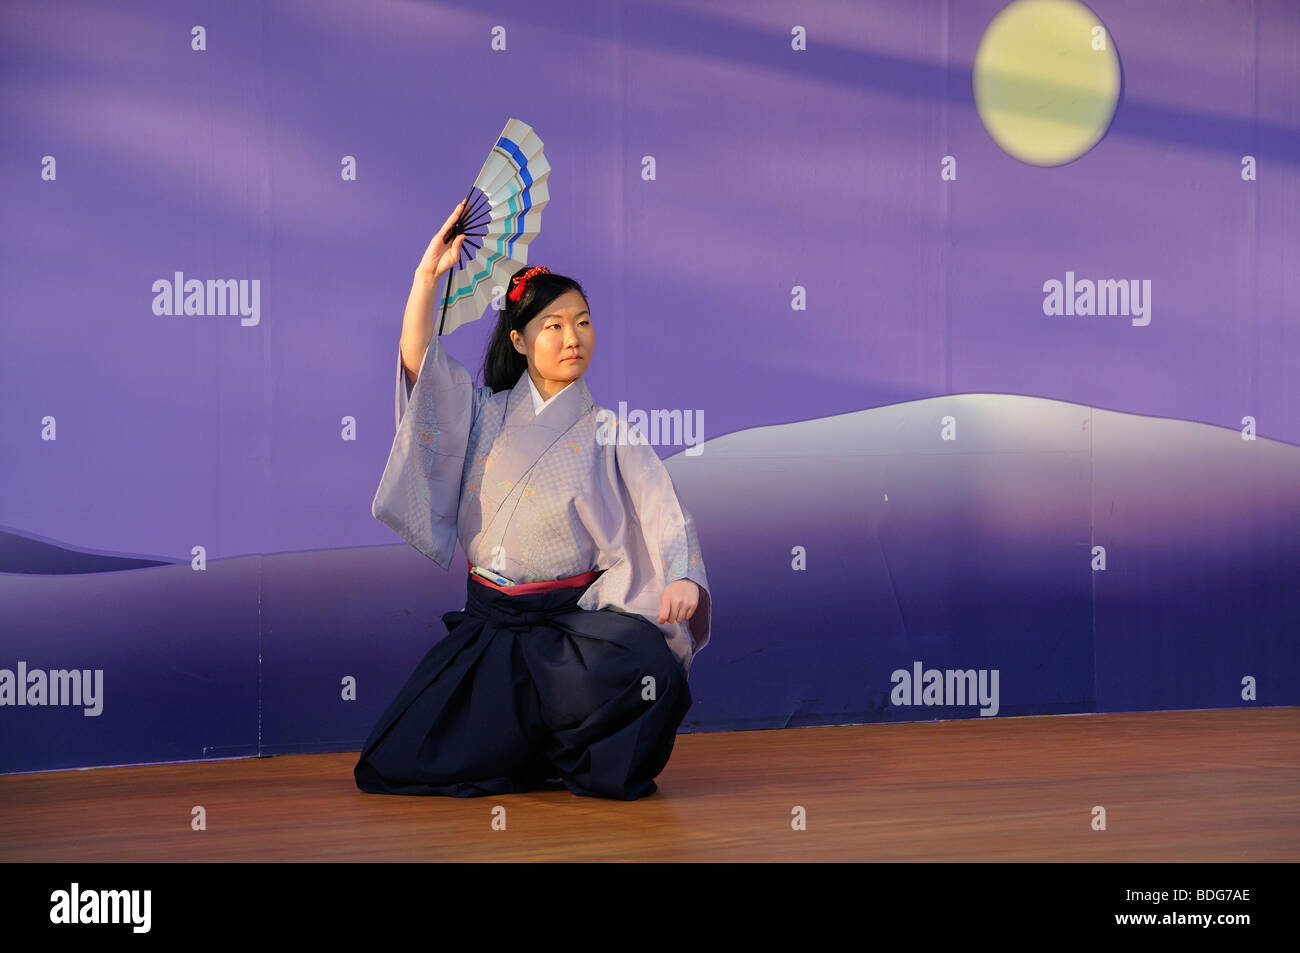 Fan dance, Nihon Buyo, at the Cherry Blossom Festival, Hanami in Kyoto, Japan, Asia - Stock Image